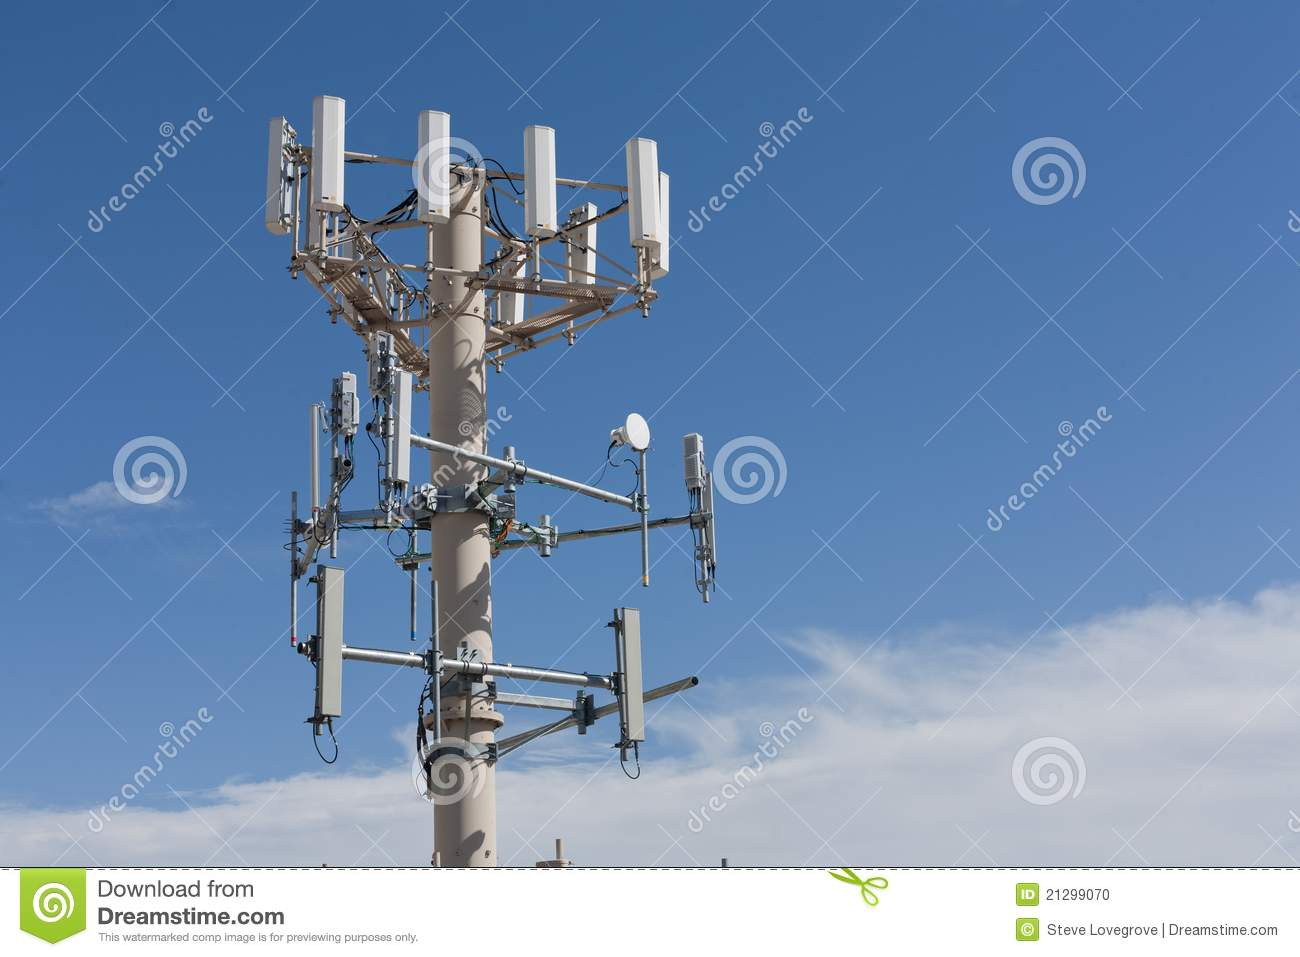 antennas for cell phones fcc antennas for cell cell phone antenna tower stock photo image of 938